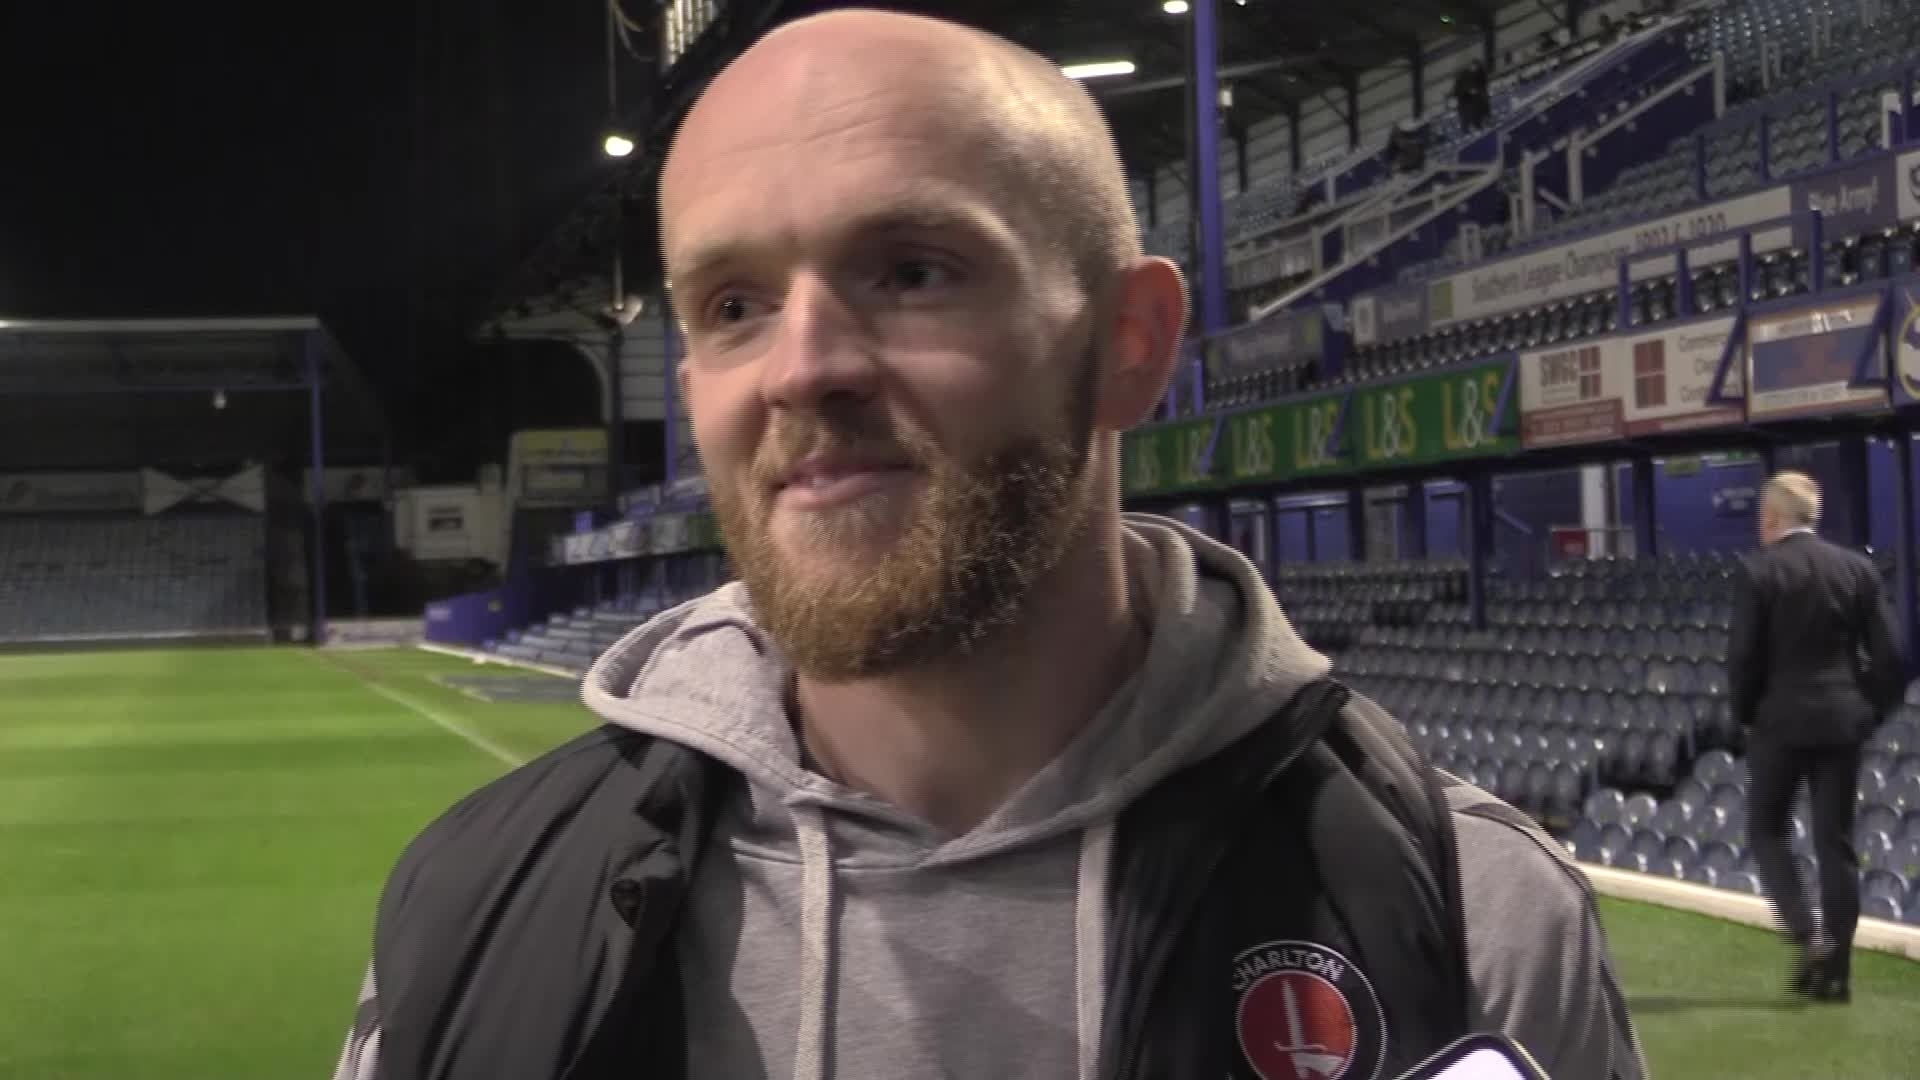 Jonny Williams 'over the moon' after first Charlton goal (October 2020)